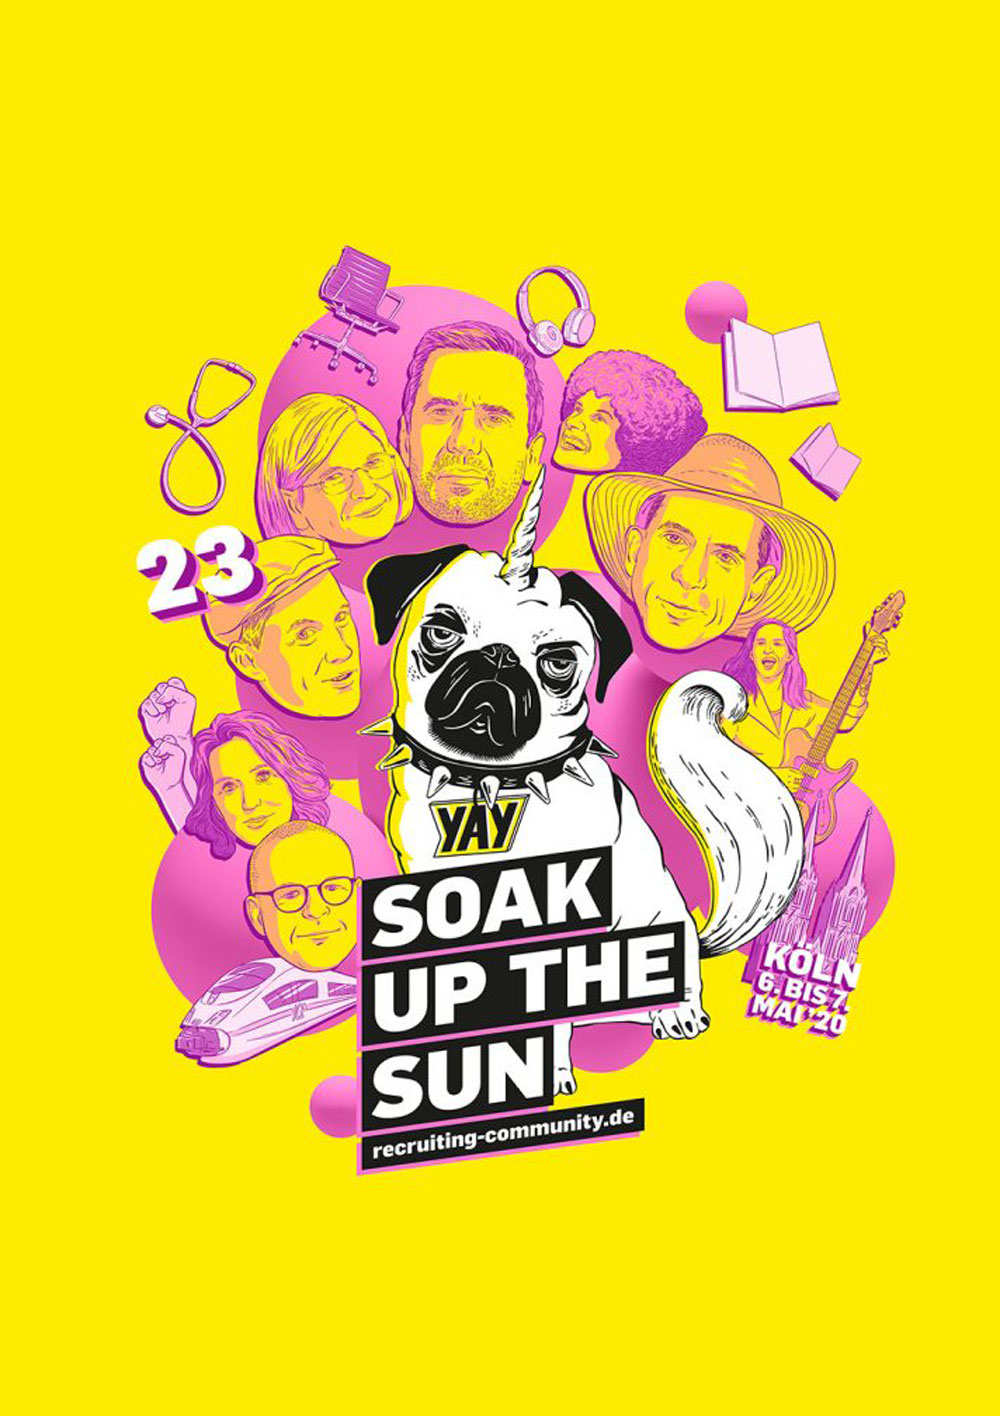 Soak up the sun: Das #RC20-Festival in Köln